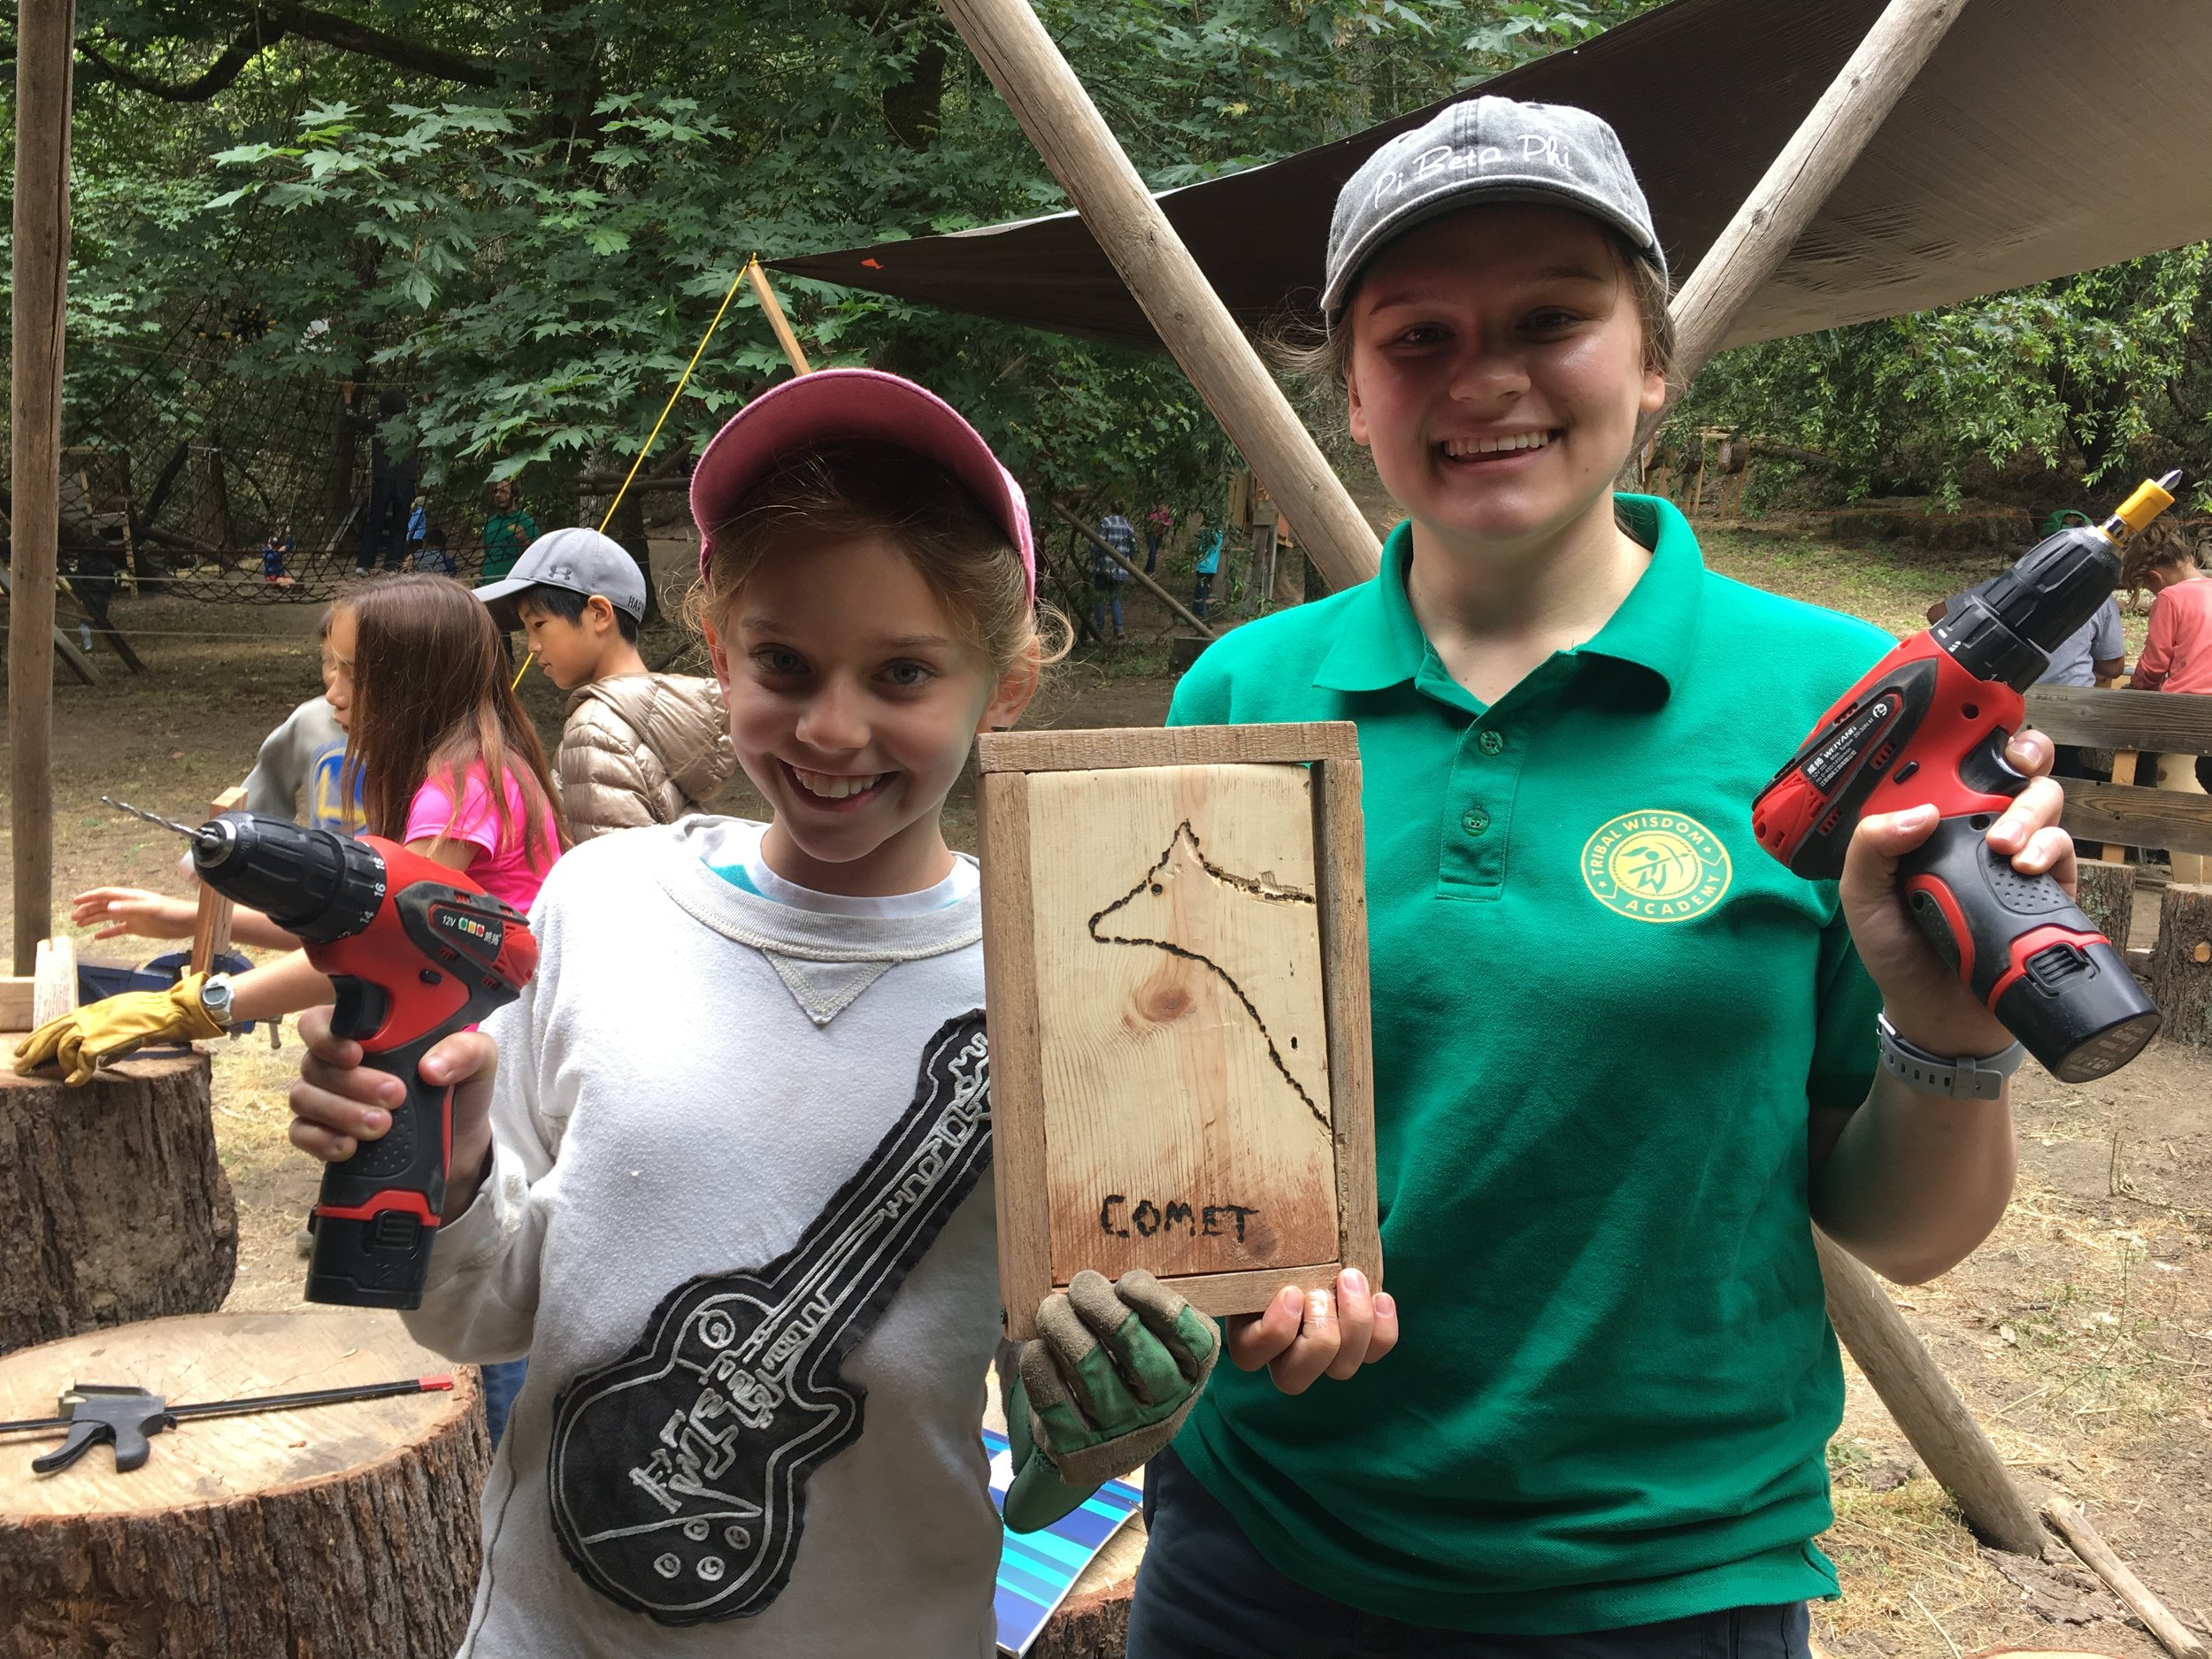 Mentor Monica Lemmon grew up in Santa Clara, now studies foreign languages and linguistics. This is the second year that Monica has been working at TWA. Monica nurtures a sense of adventure while guiding children in outdoor maker projects. -